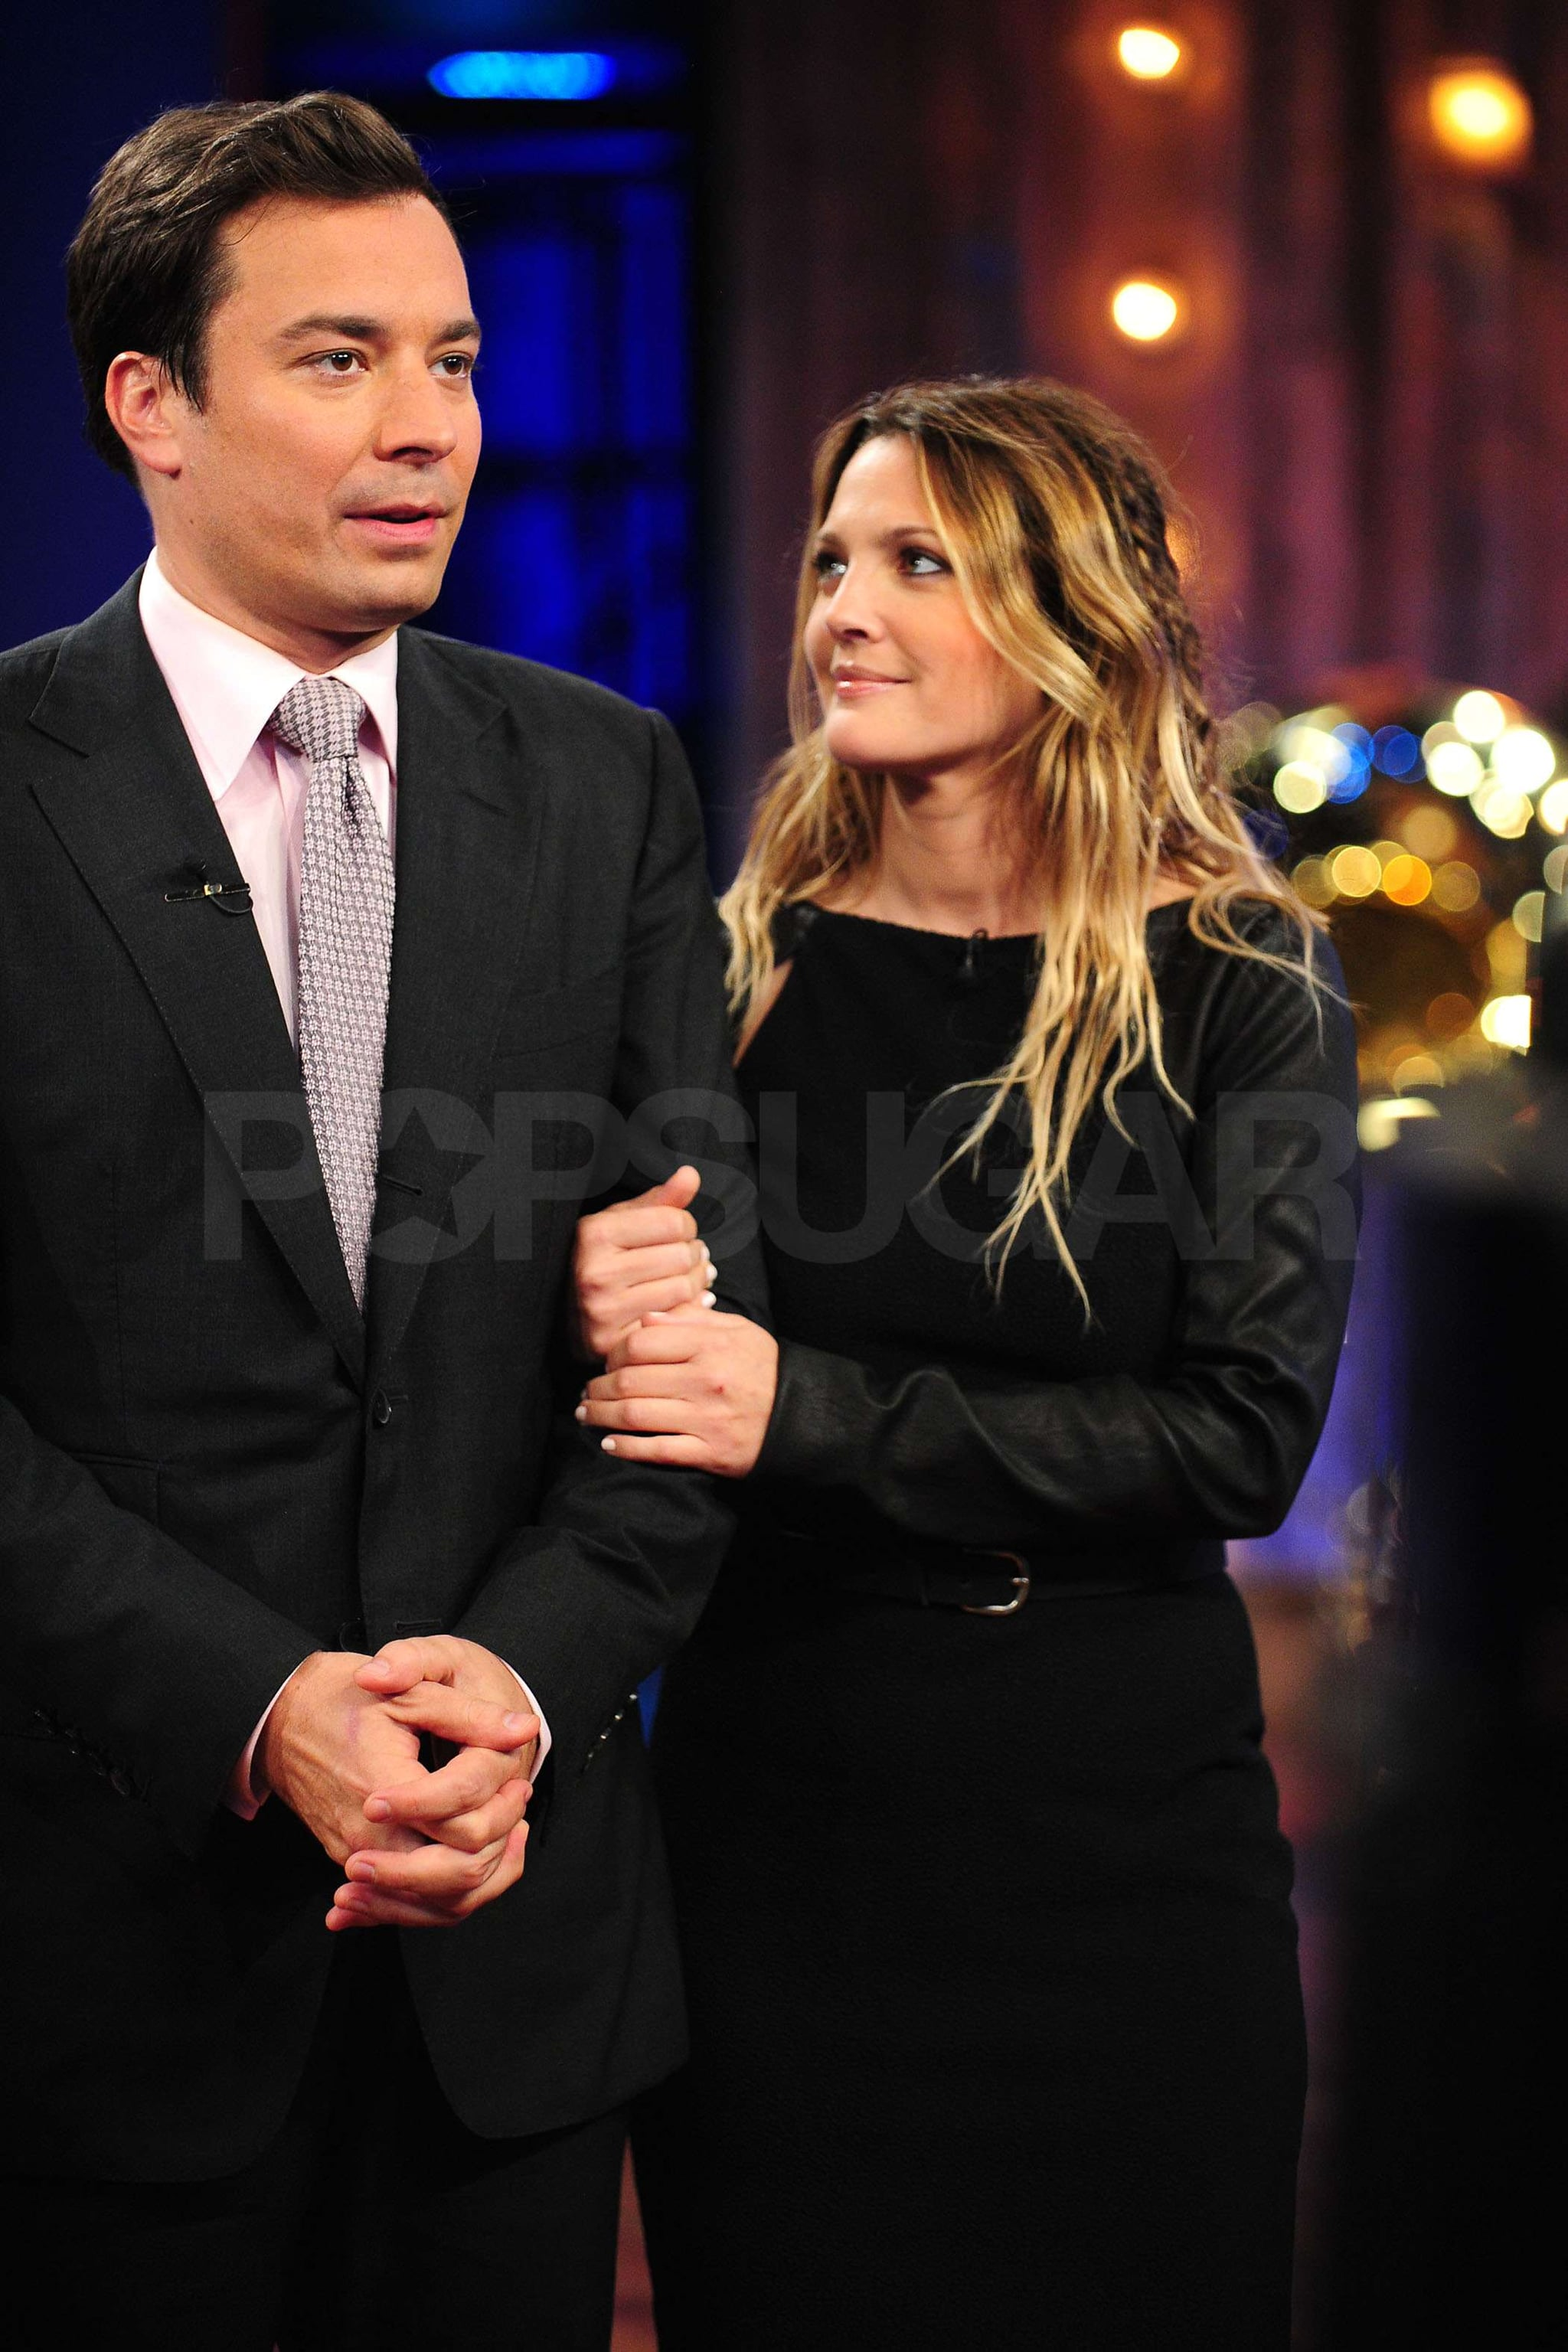 Pictures of Drew Barrymore Visiting Late Night With Jimmy ...